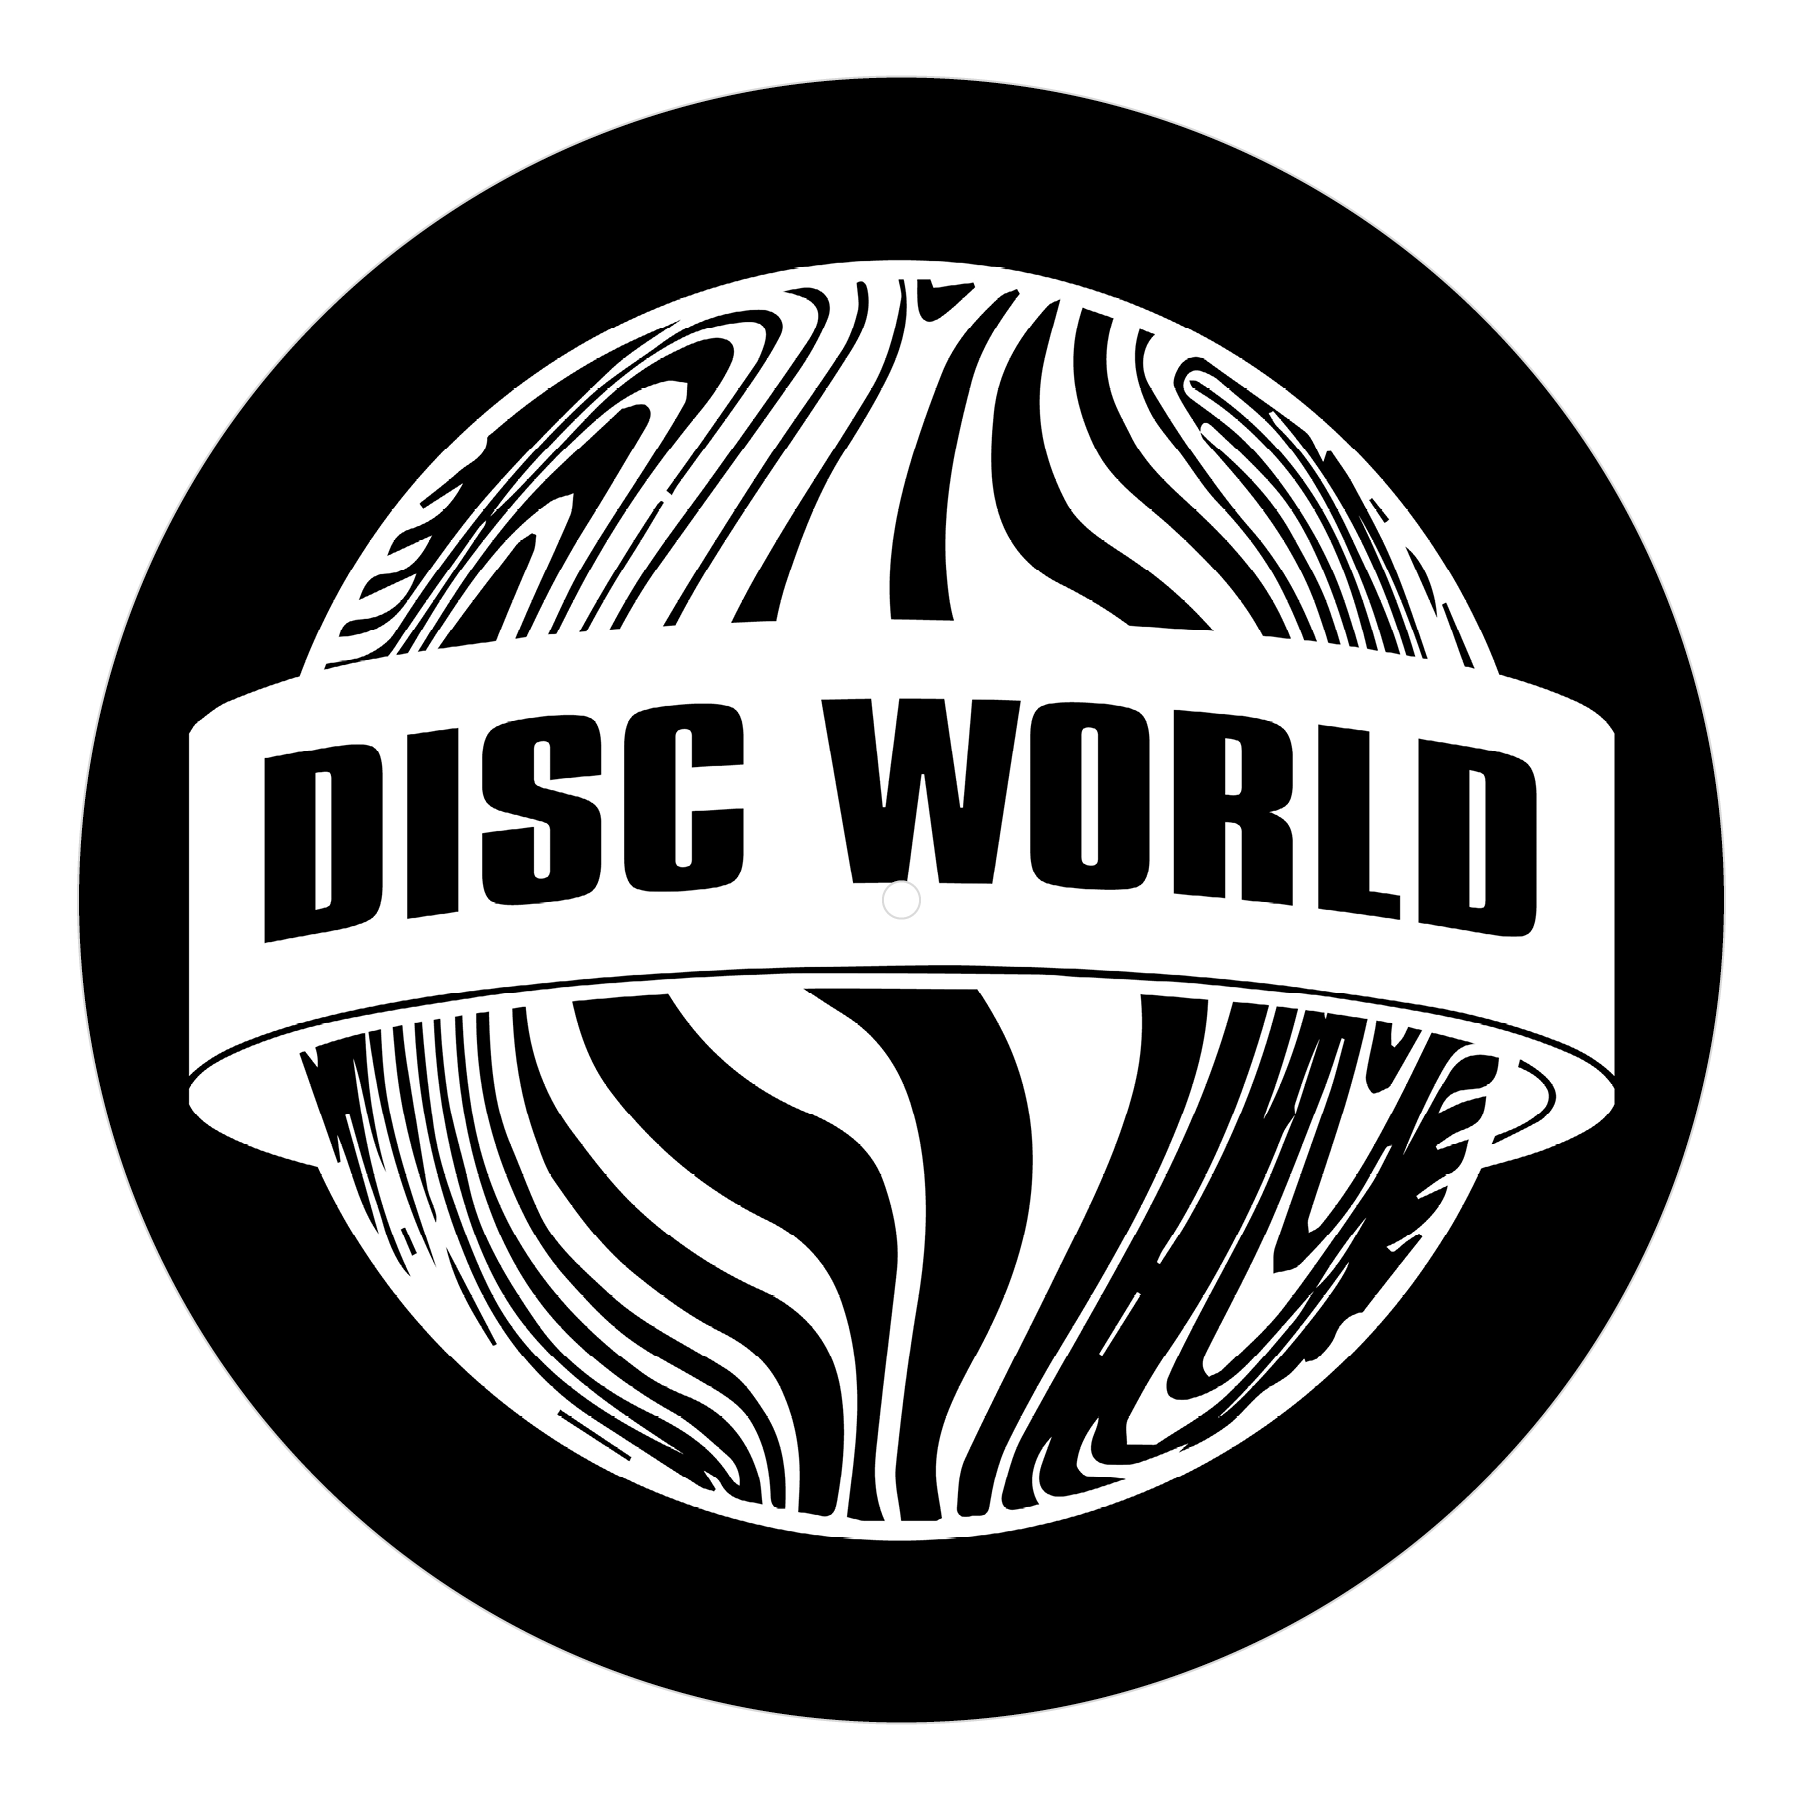 Disc World 'Black' Slipmat